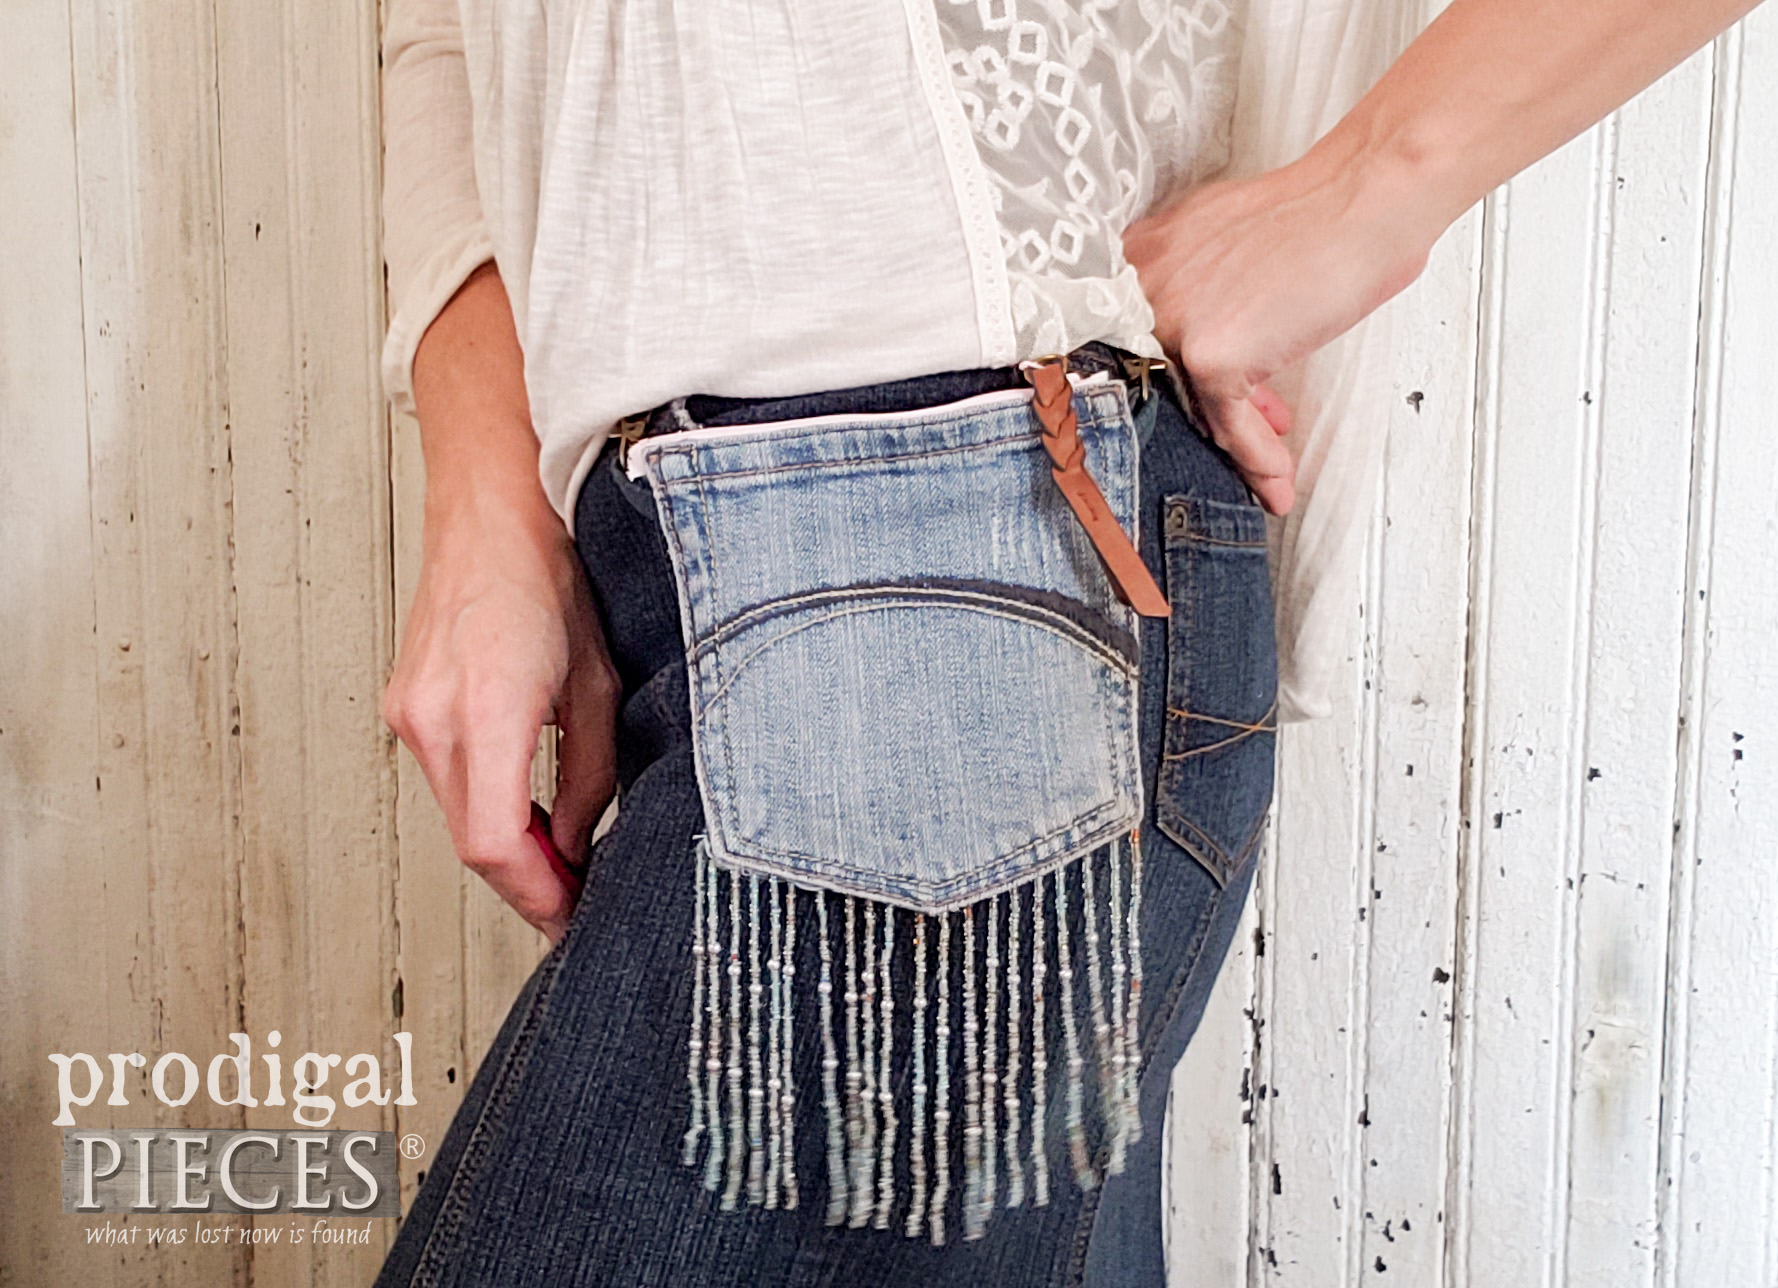 DIY Belt-Loop Purse with Pink Accents by Larissa of Prodigal Pieces   prodigalpieces.com #prodigalpieces #diy #handmade #fashion #style